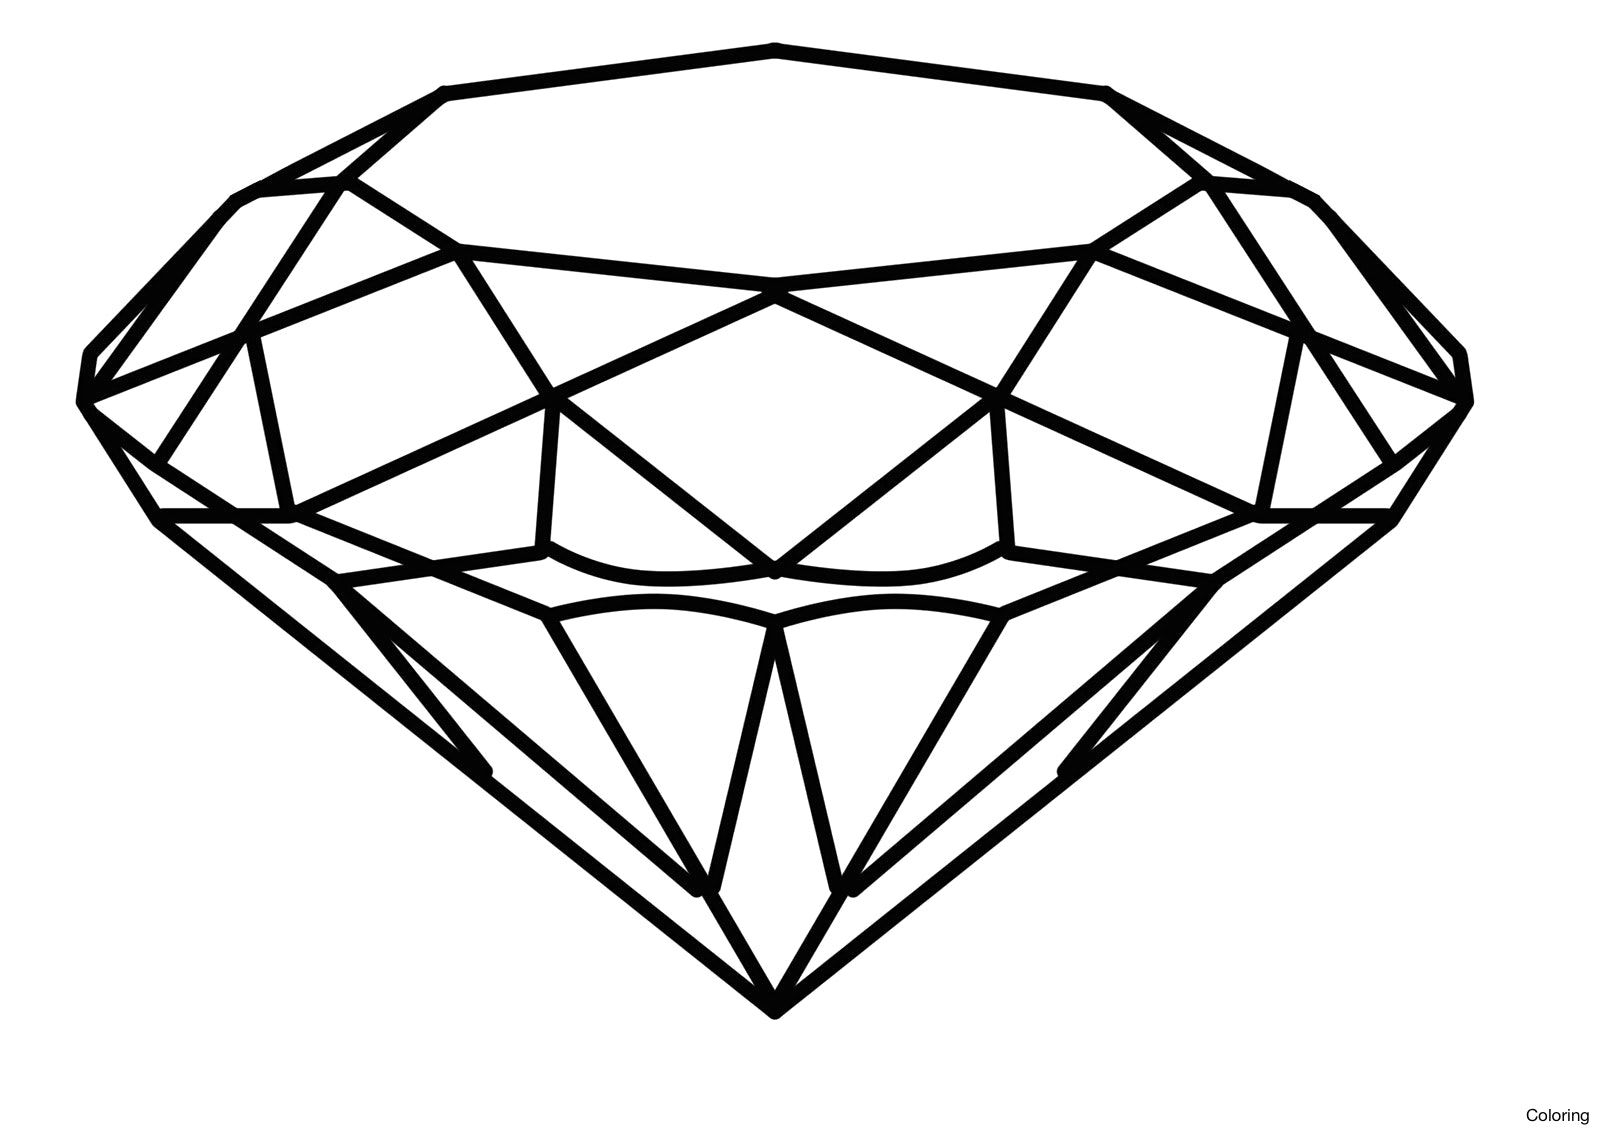 Diamond Coloring Pages Gallery   Free Coloring Sheets